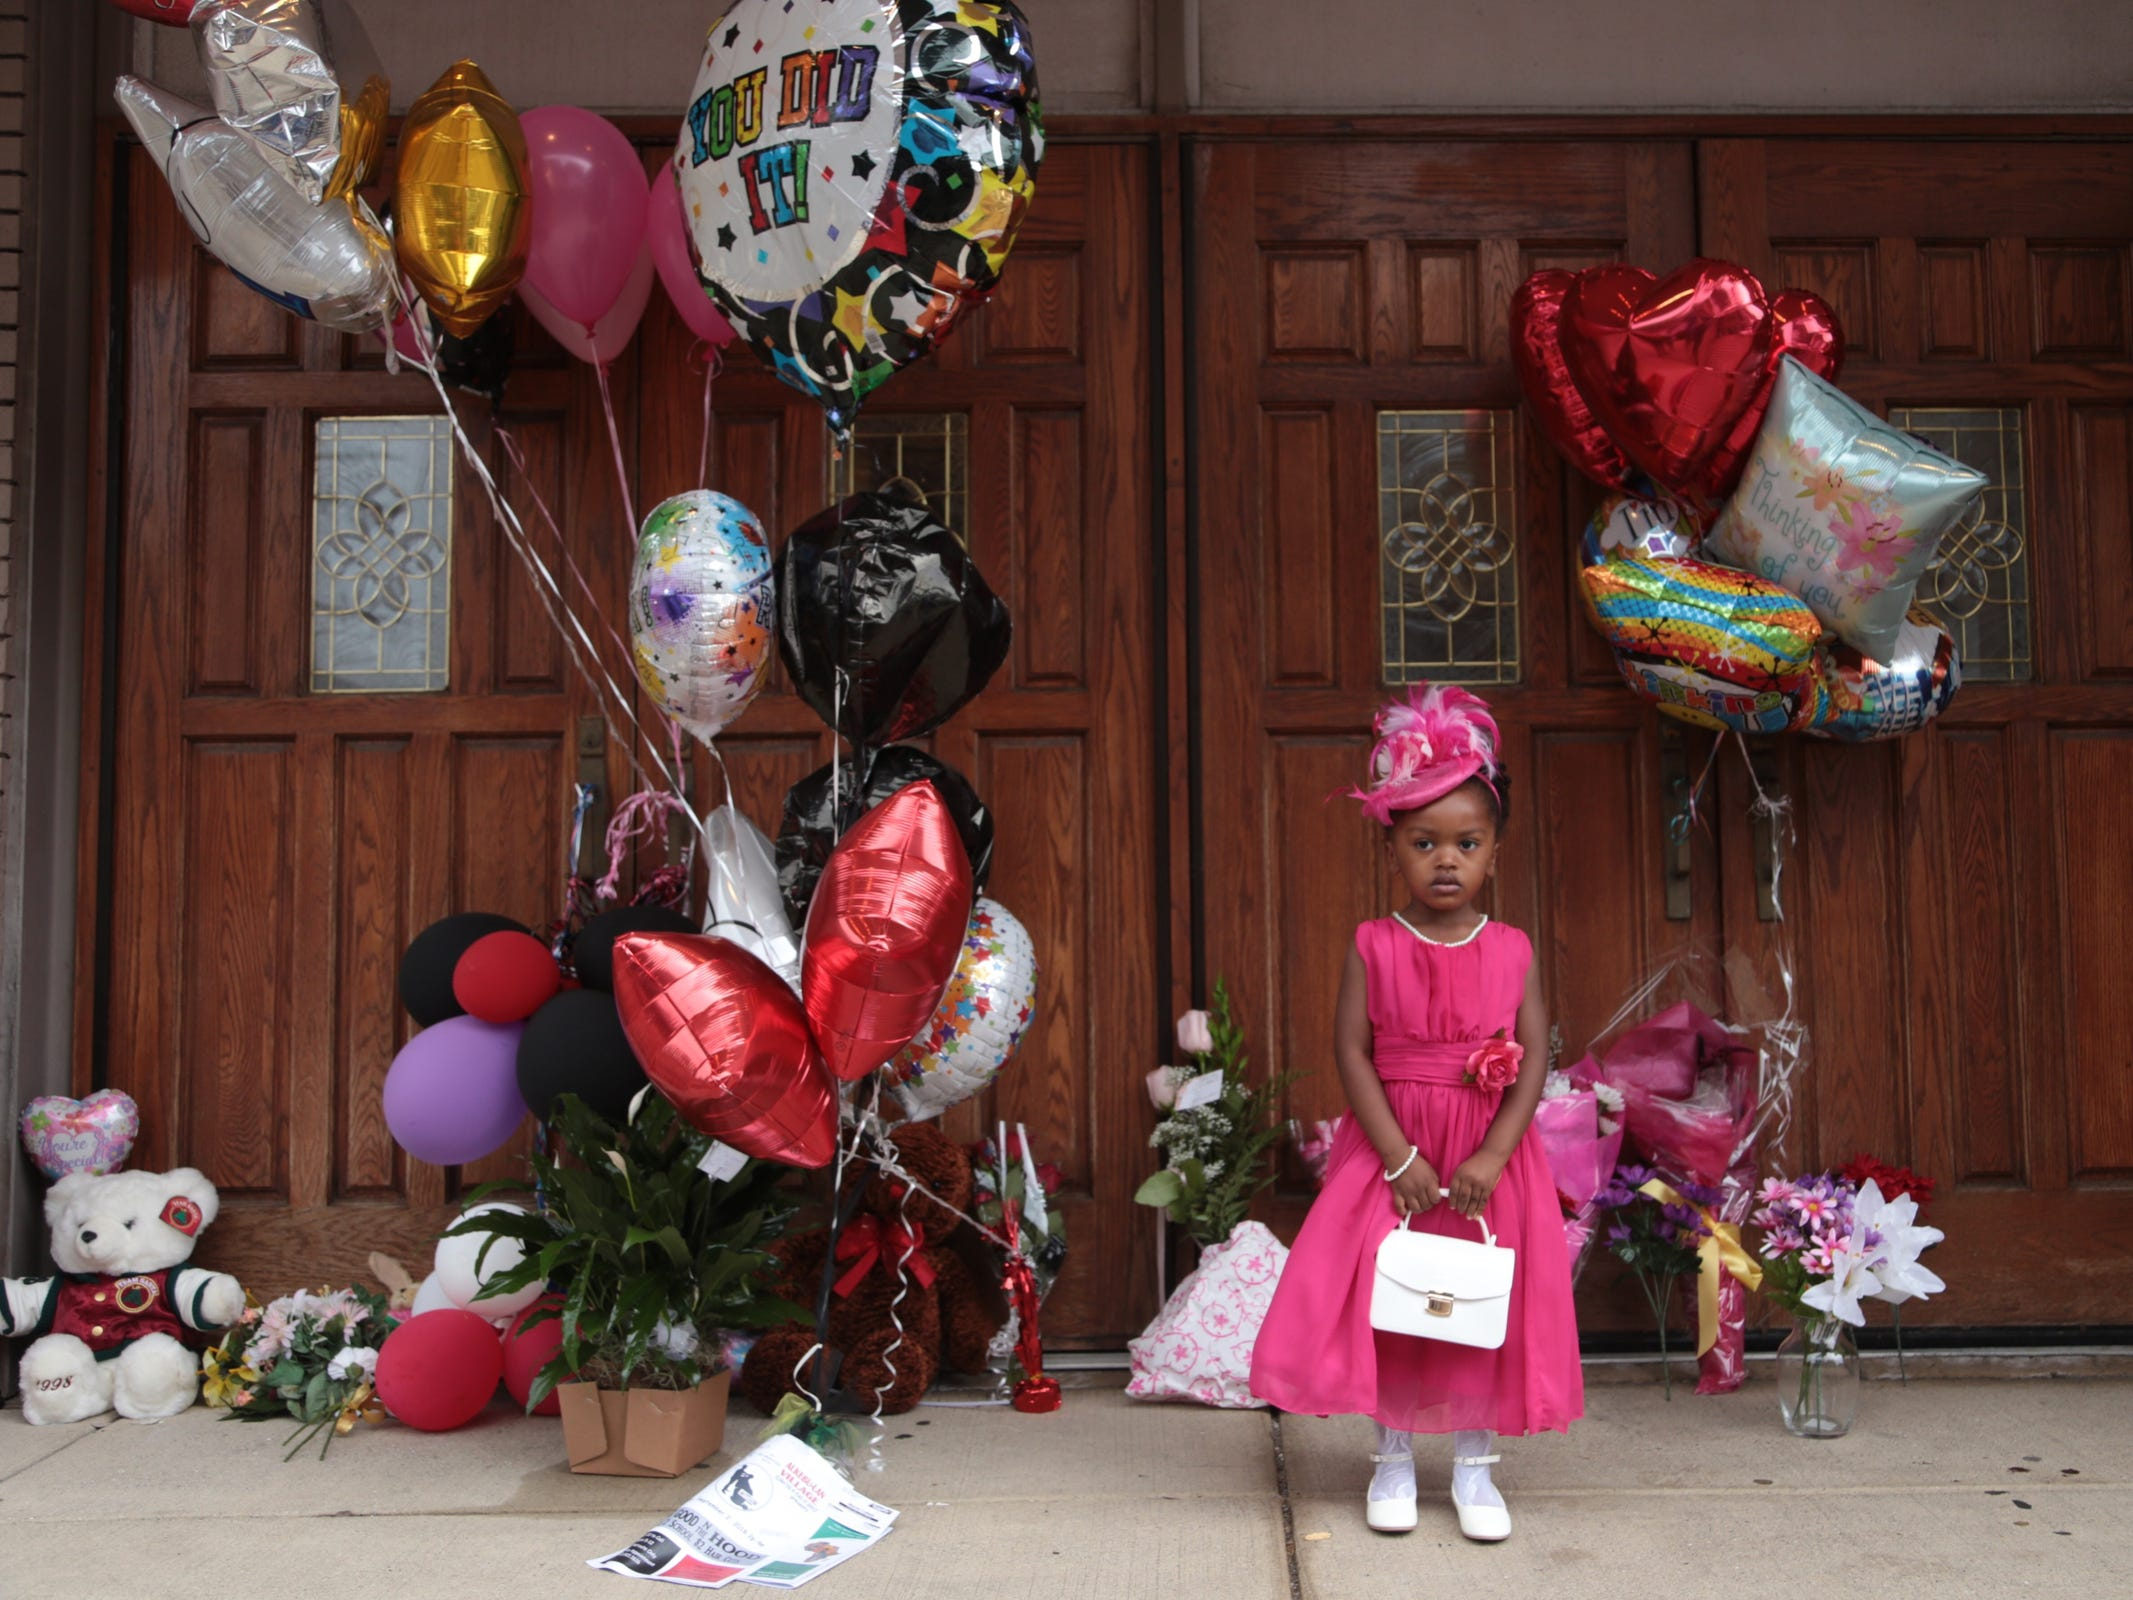 Laylah Pope of Detroit stands by a memorial outside of New Bethel Baptist Church in Detroit while visiting the church where Aretha Franklin grew up attending in Detroit on Thursday, August 16, 2018 following her passing.